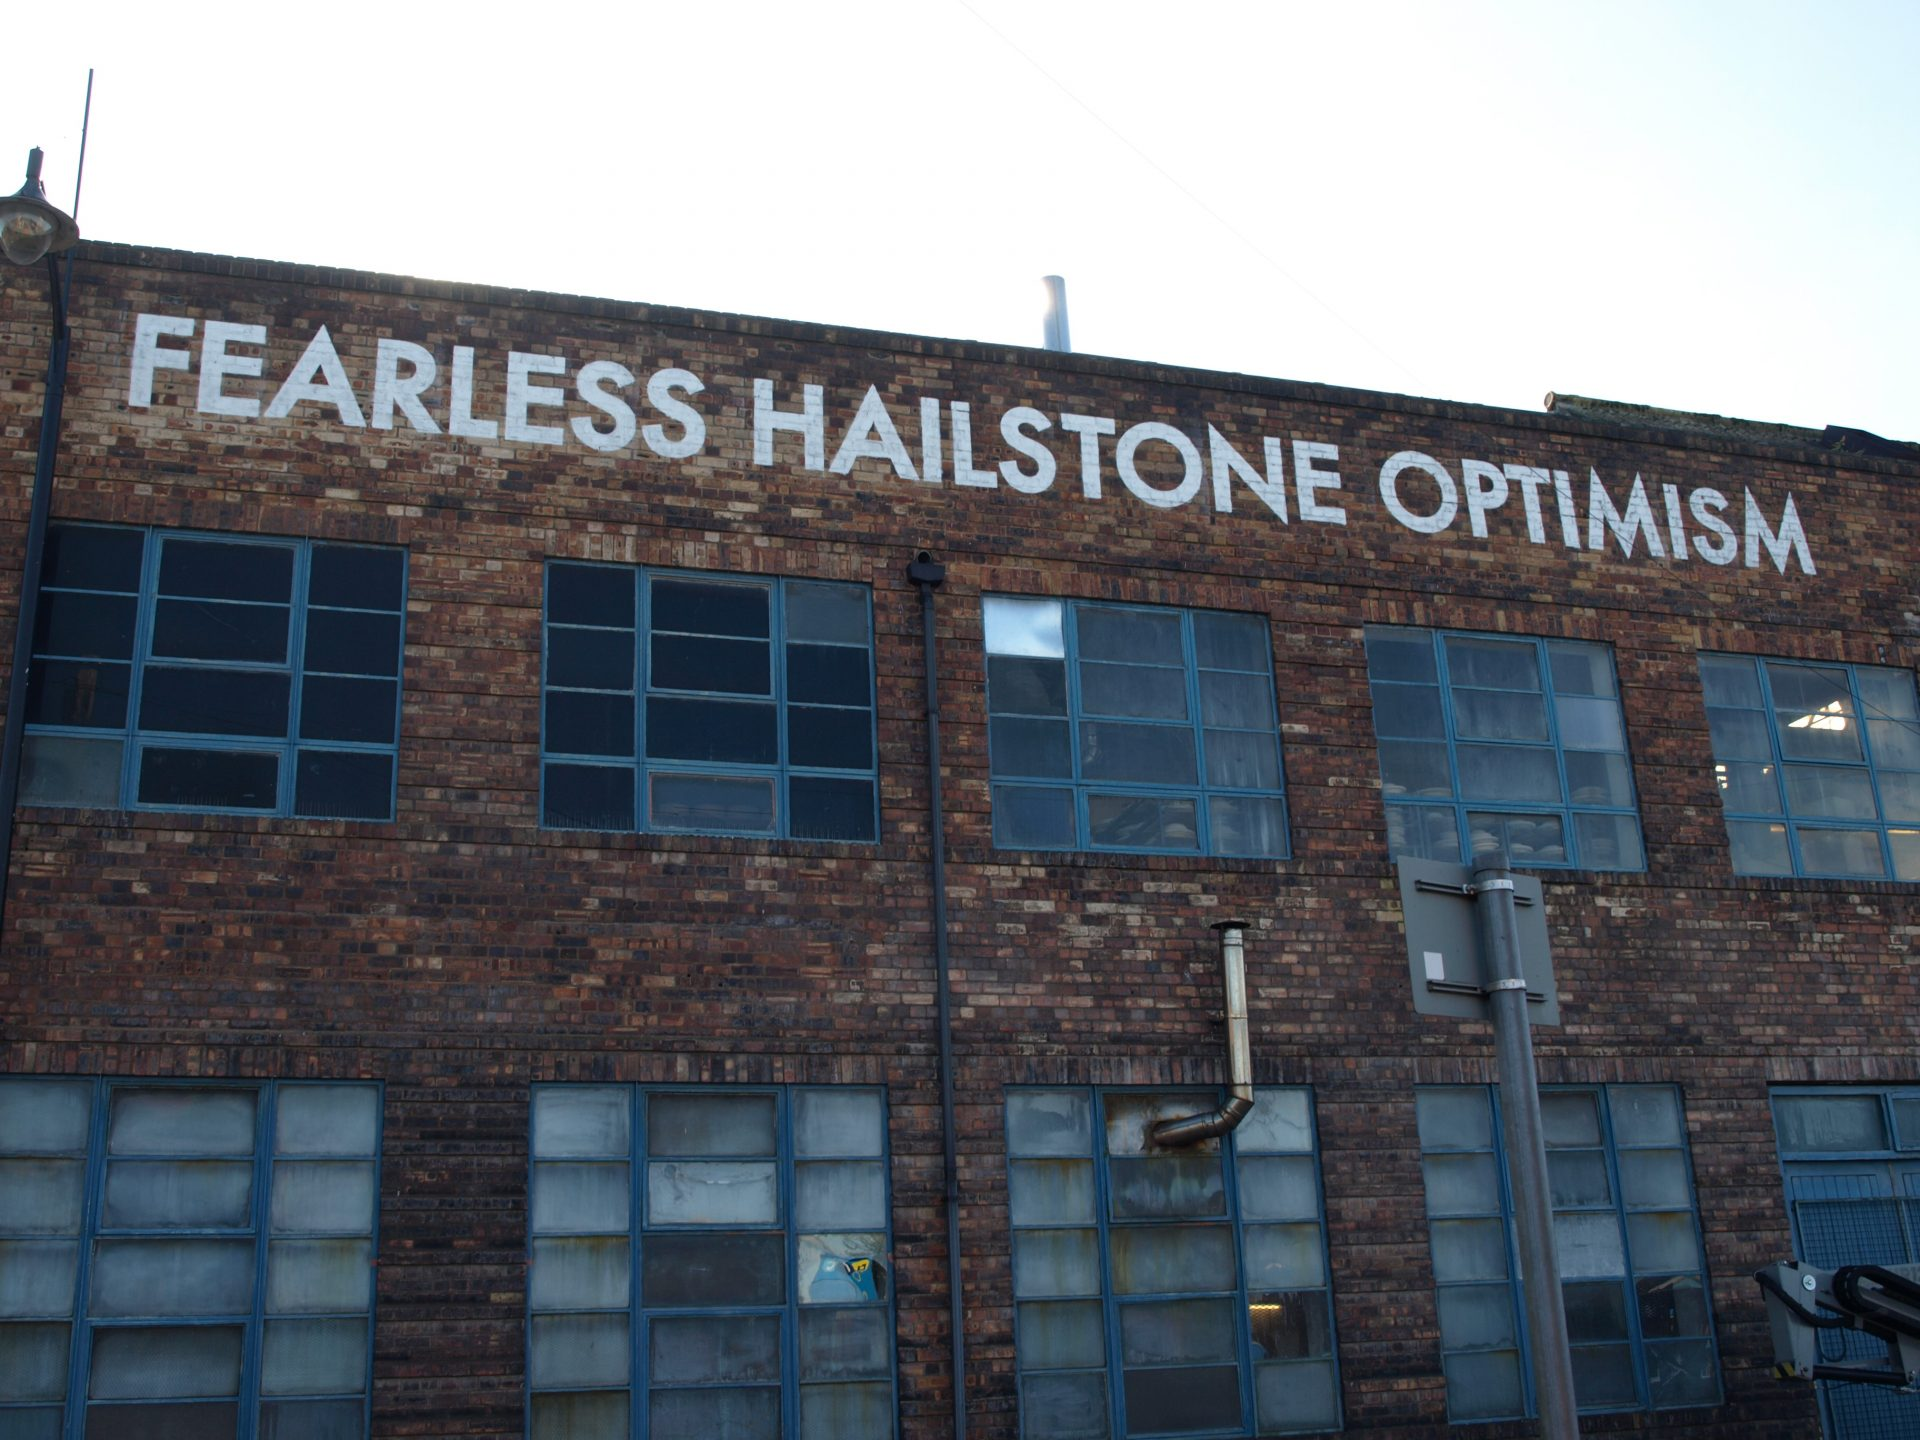 Fearless Hailstone Optimism